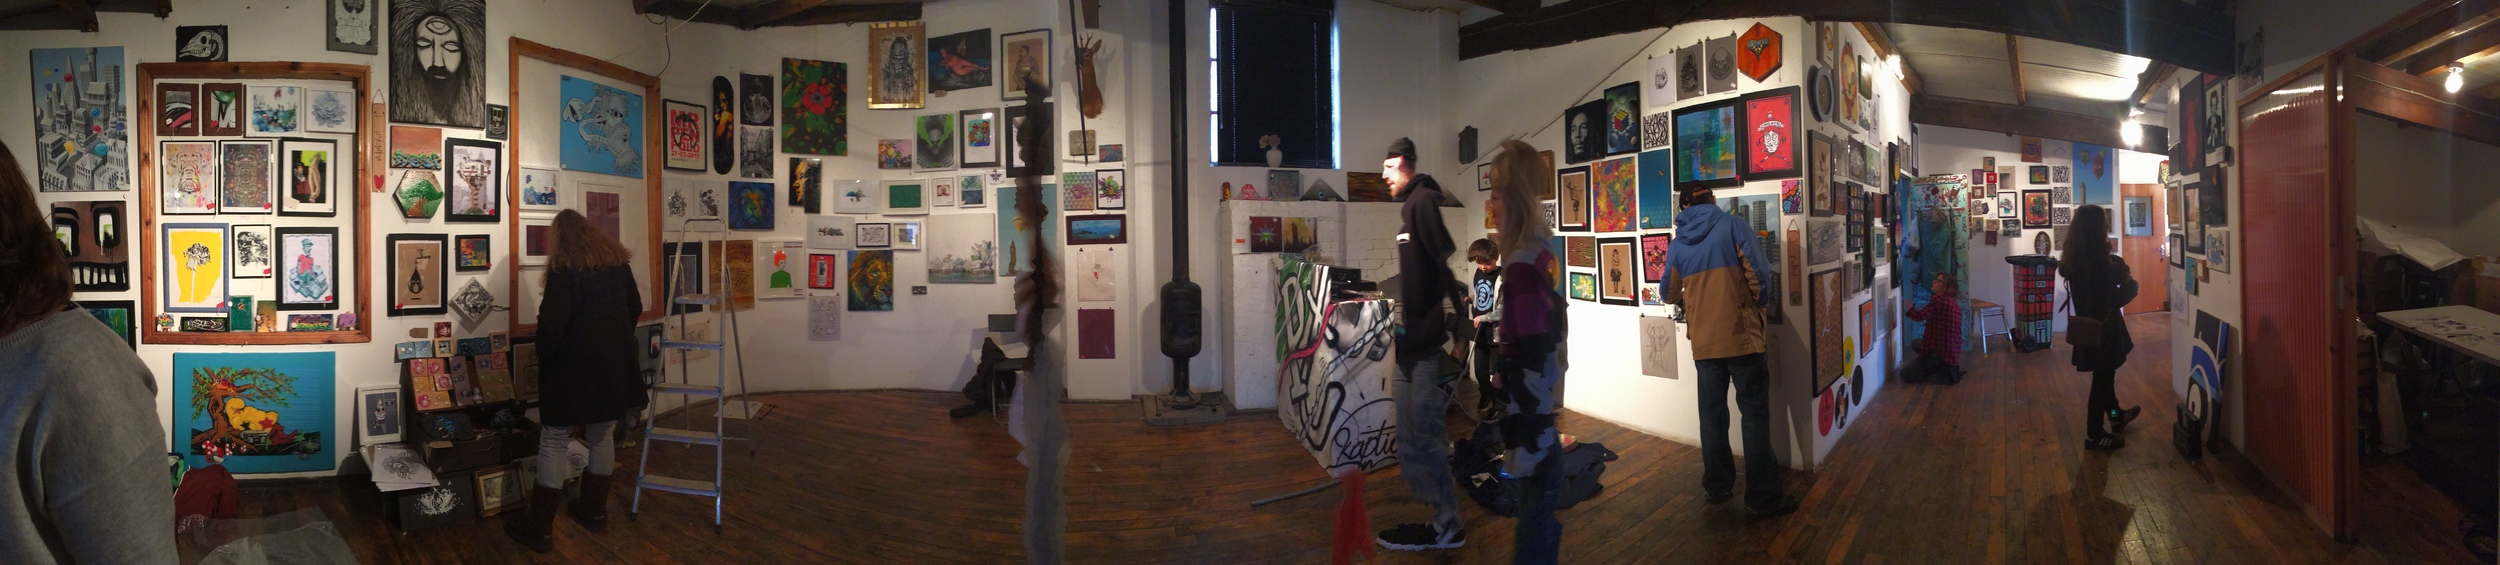 Thirtyfive Gamble Gallery panorama of One-Off Art Fair.